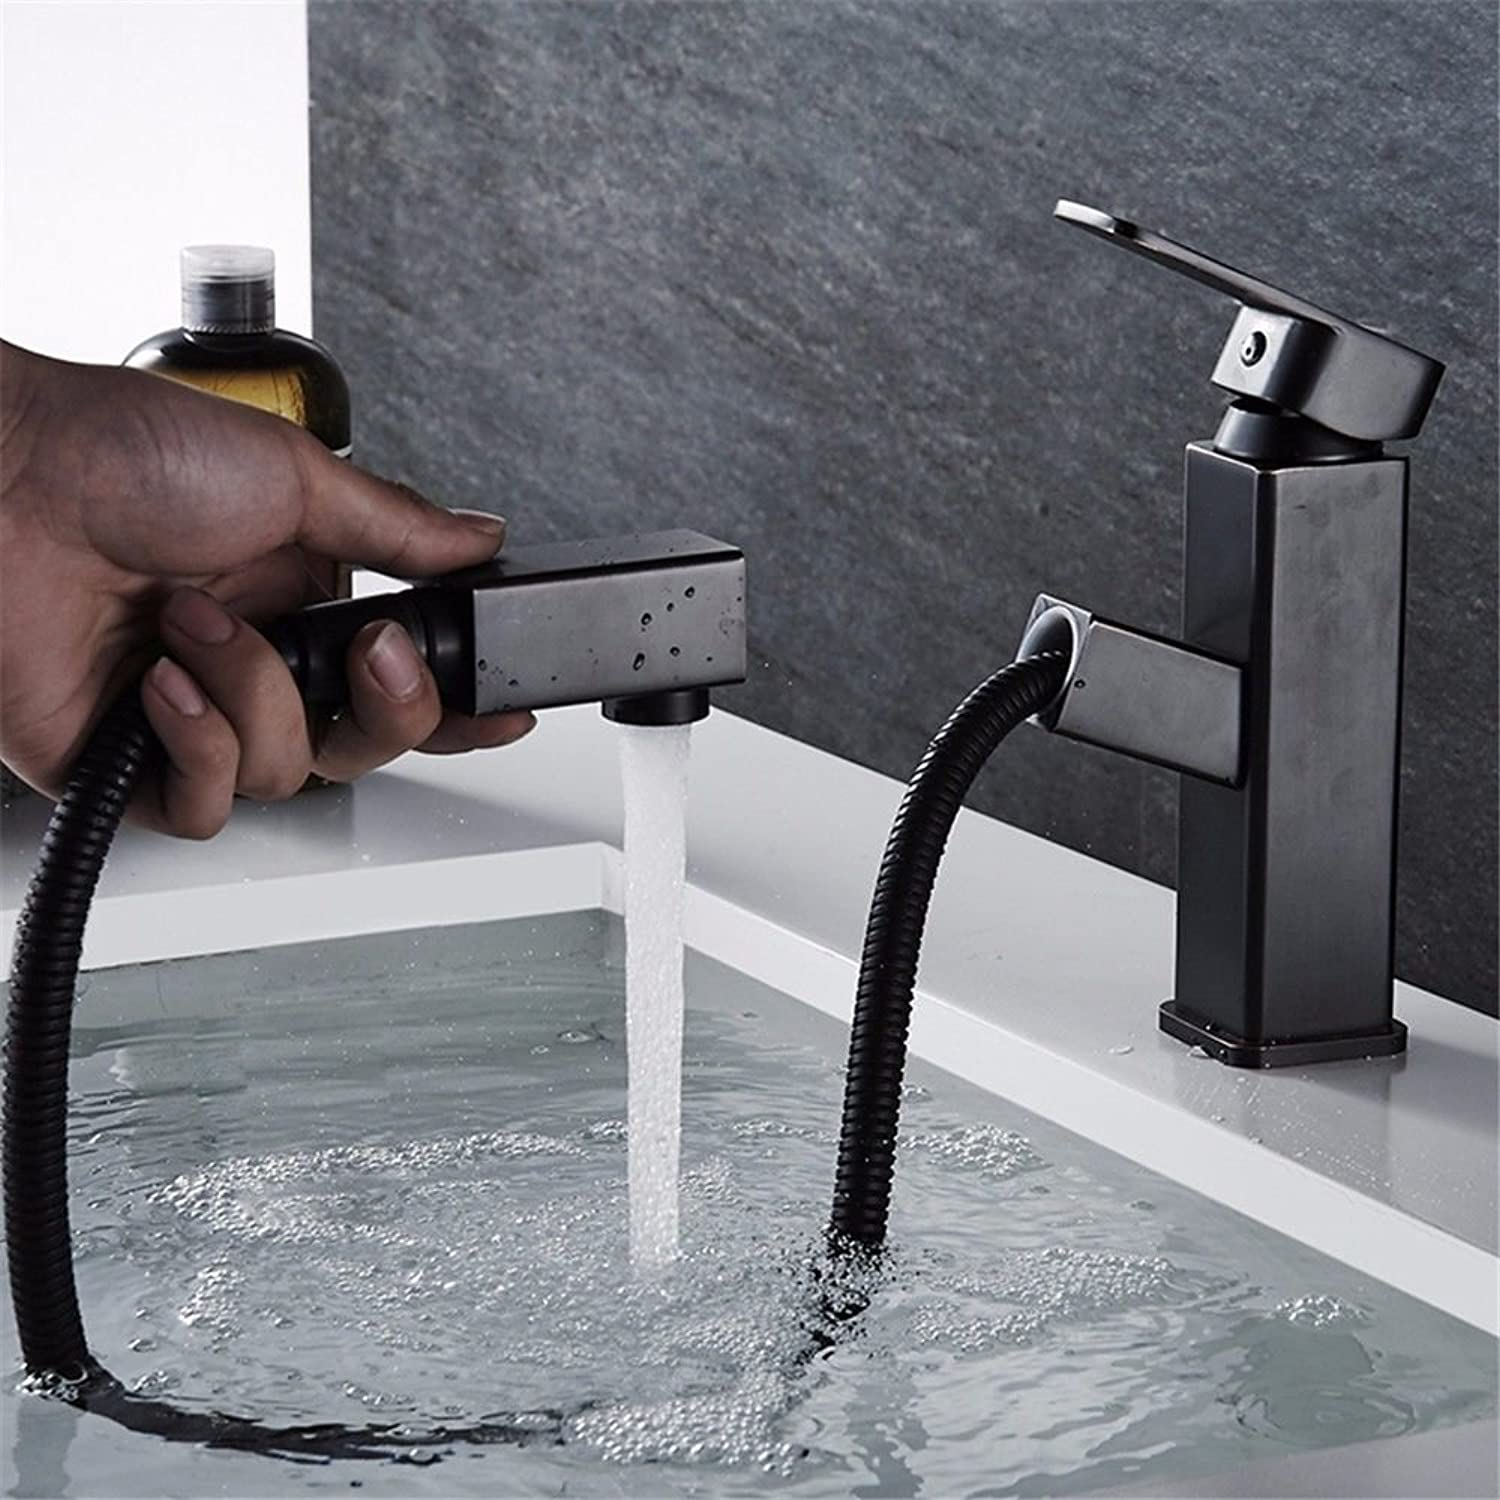 Modern simple copper hot and cold kitchen sink taps kitchen faucet Black matte pull-type telescopic wash basin kitchen hot and cold faucet copper wash basin washable Suitable for bathroom kitchen